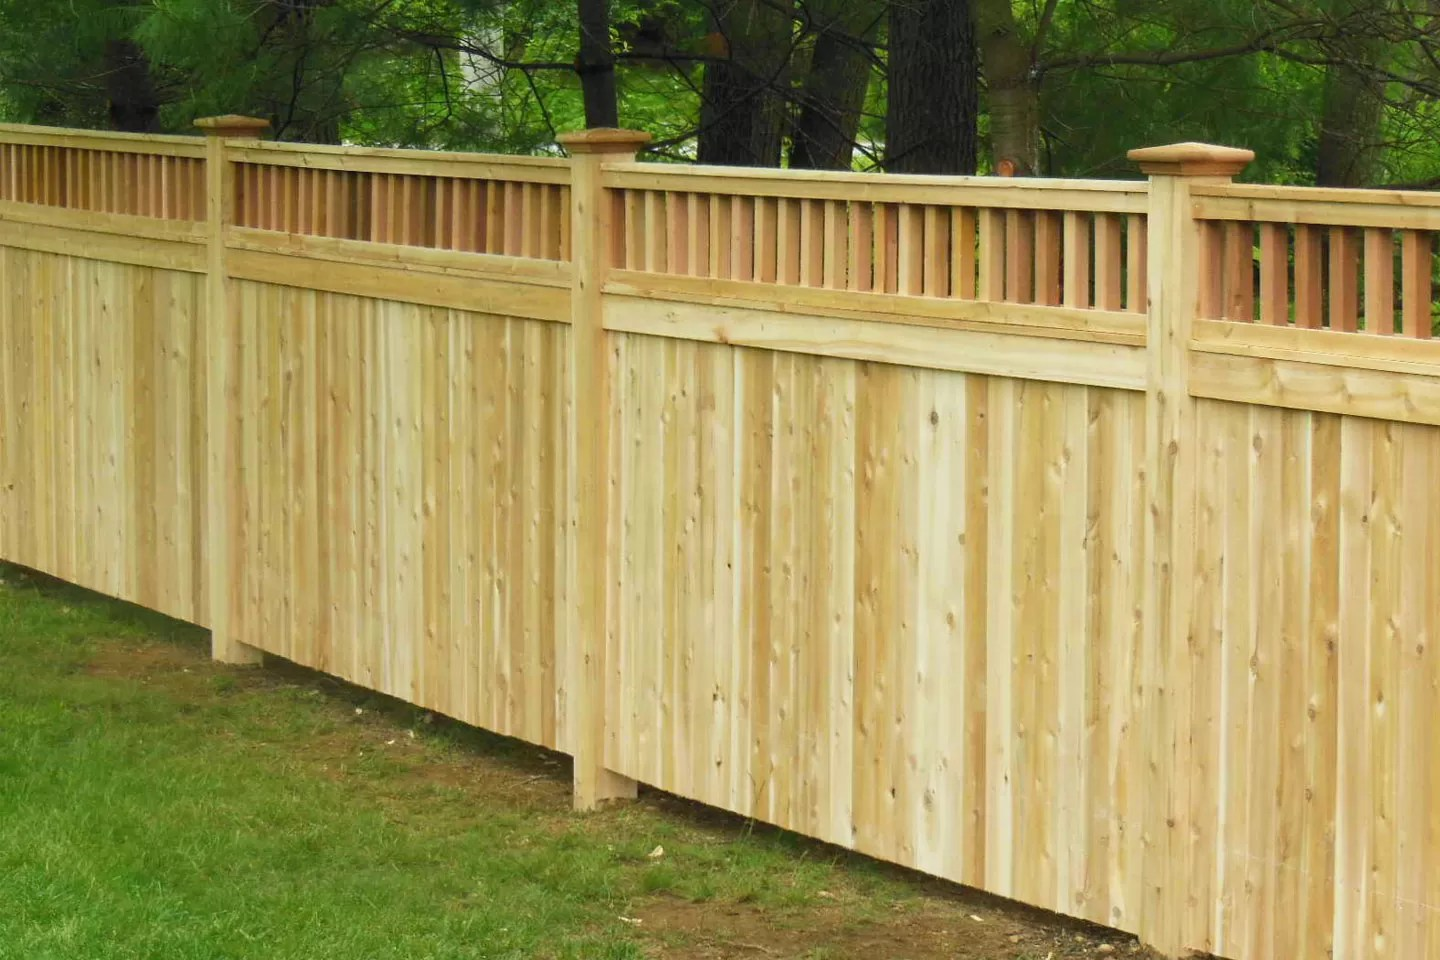 Privacy Fence Designs for Style & Seclusion   Freedonm ... on Decorations For Privacy Fence id=25209